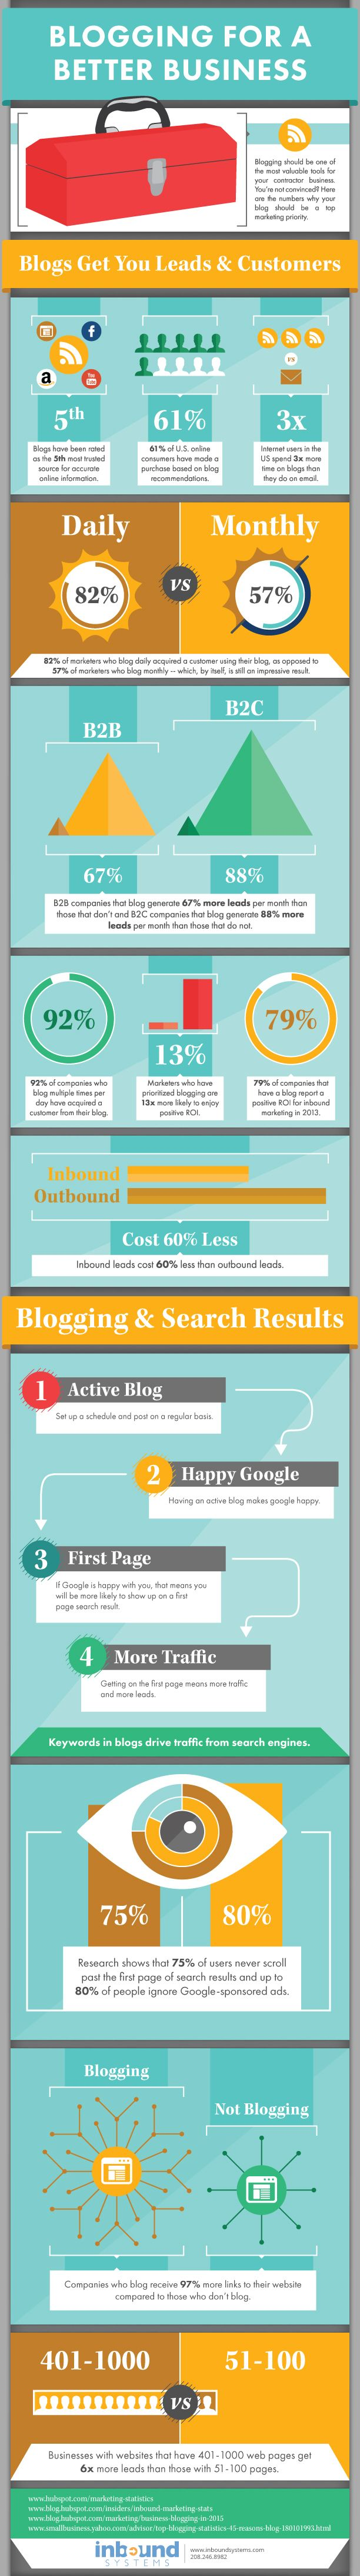 15 Stats That Show Why Blogging Should Be Your Top Marketing Priority [Infographic]